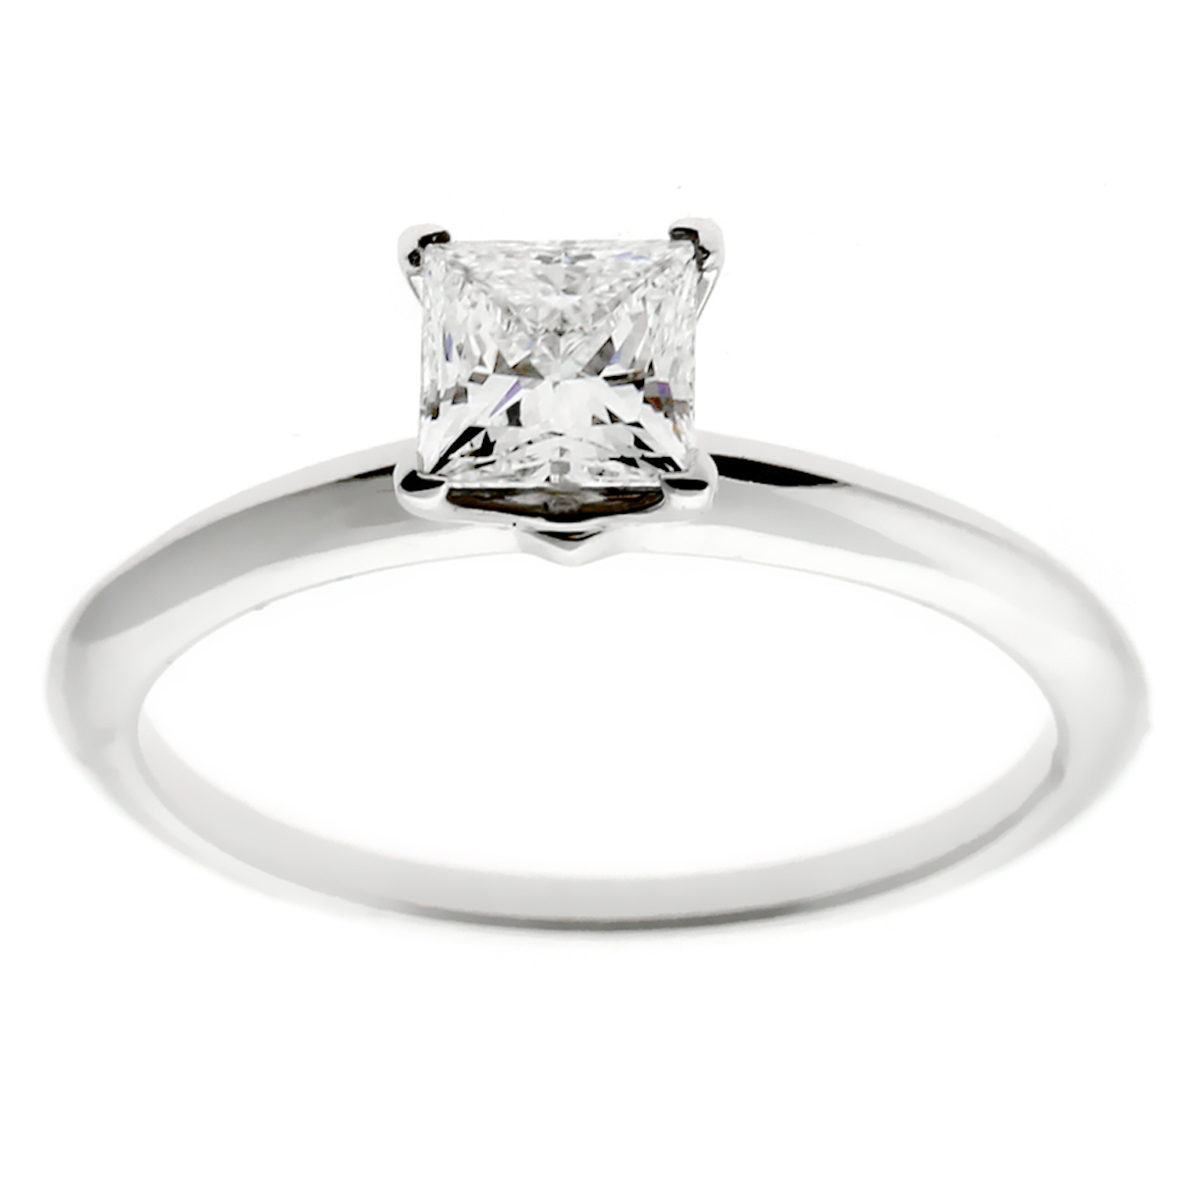 Tiffany & Co Princess Cut Diamond Engagement Ring - Tiffany and Co Jewelry